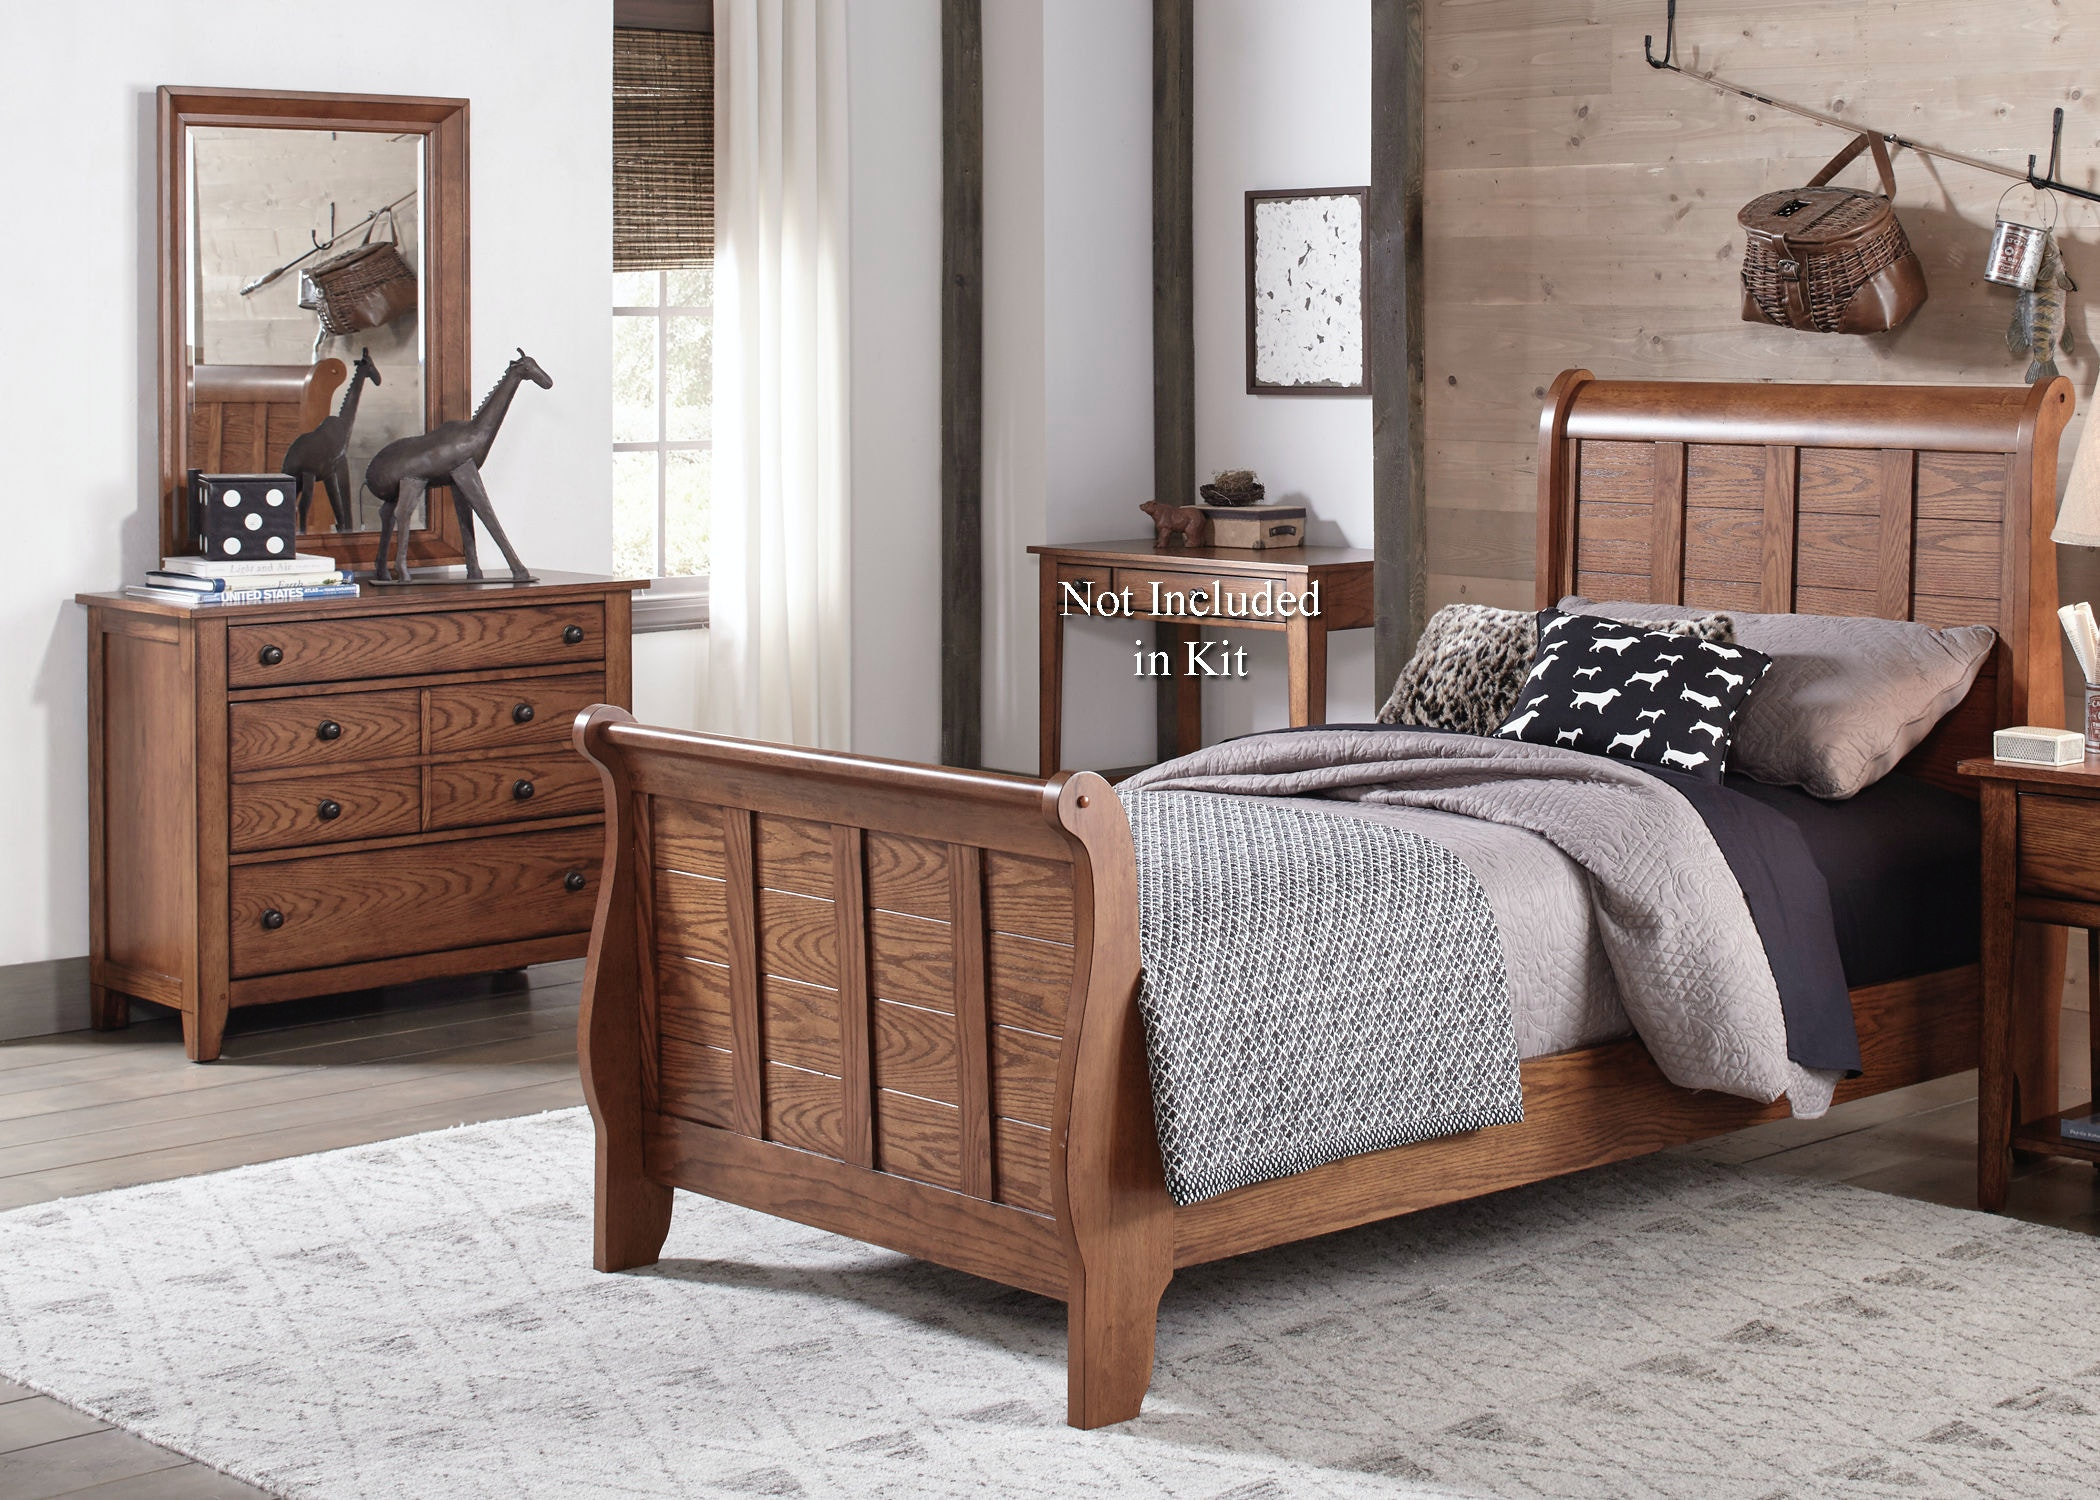 Liberty Furniture Twin Sleigh Bed, Dresser And Mirror